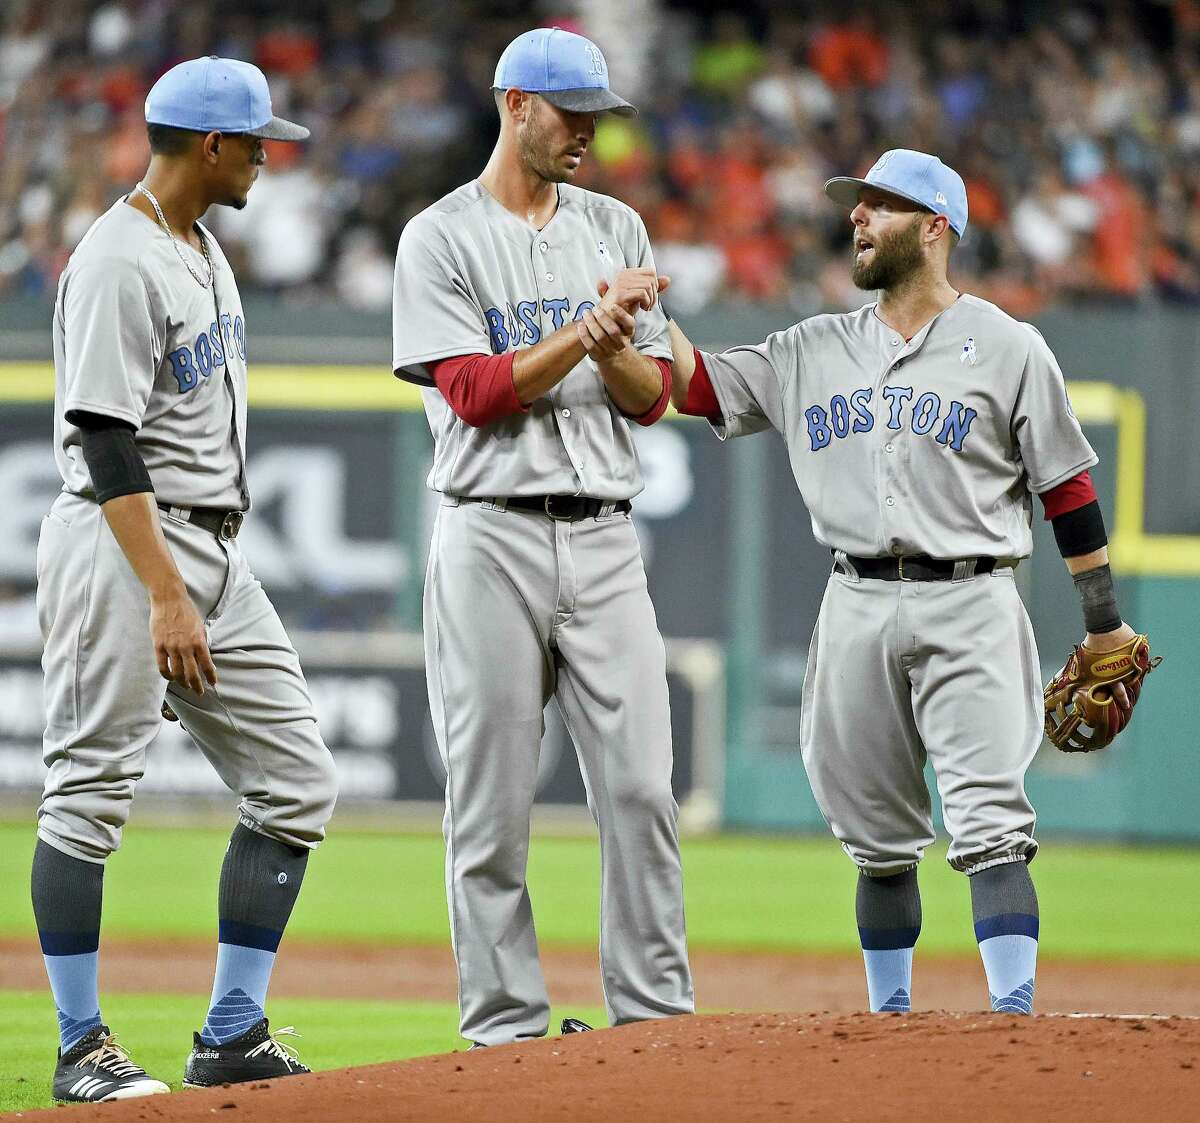 Red Sox second baseman Dustin Pedroia, right, talks with starting pitcher Rick Porcello, center, as shortstop Xander Bogaerts looks on during Saturday's game in Houston.